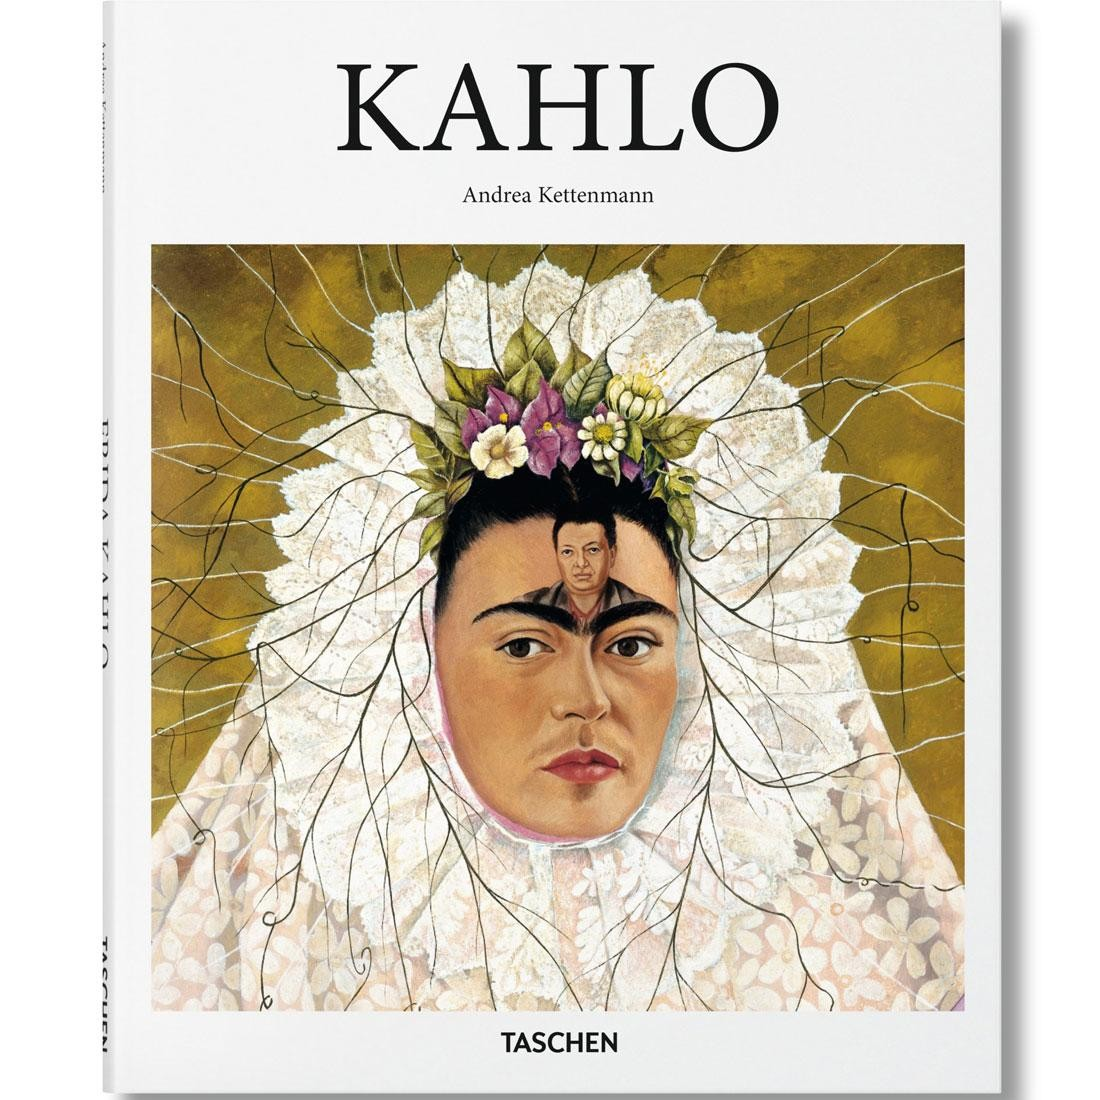 Kahlo By Andrea Kettenmann Book (white / hardcover)